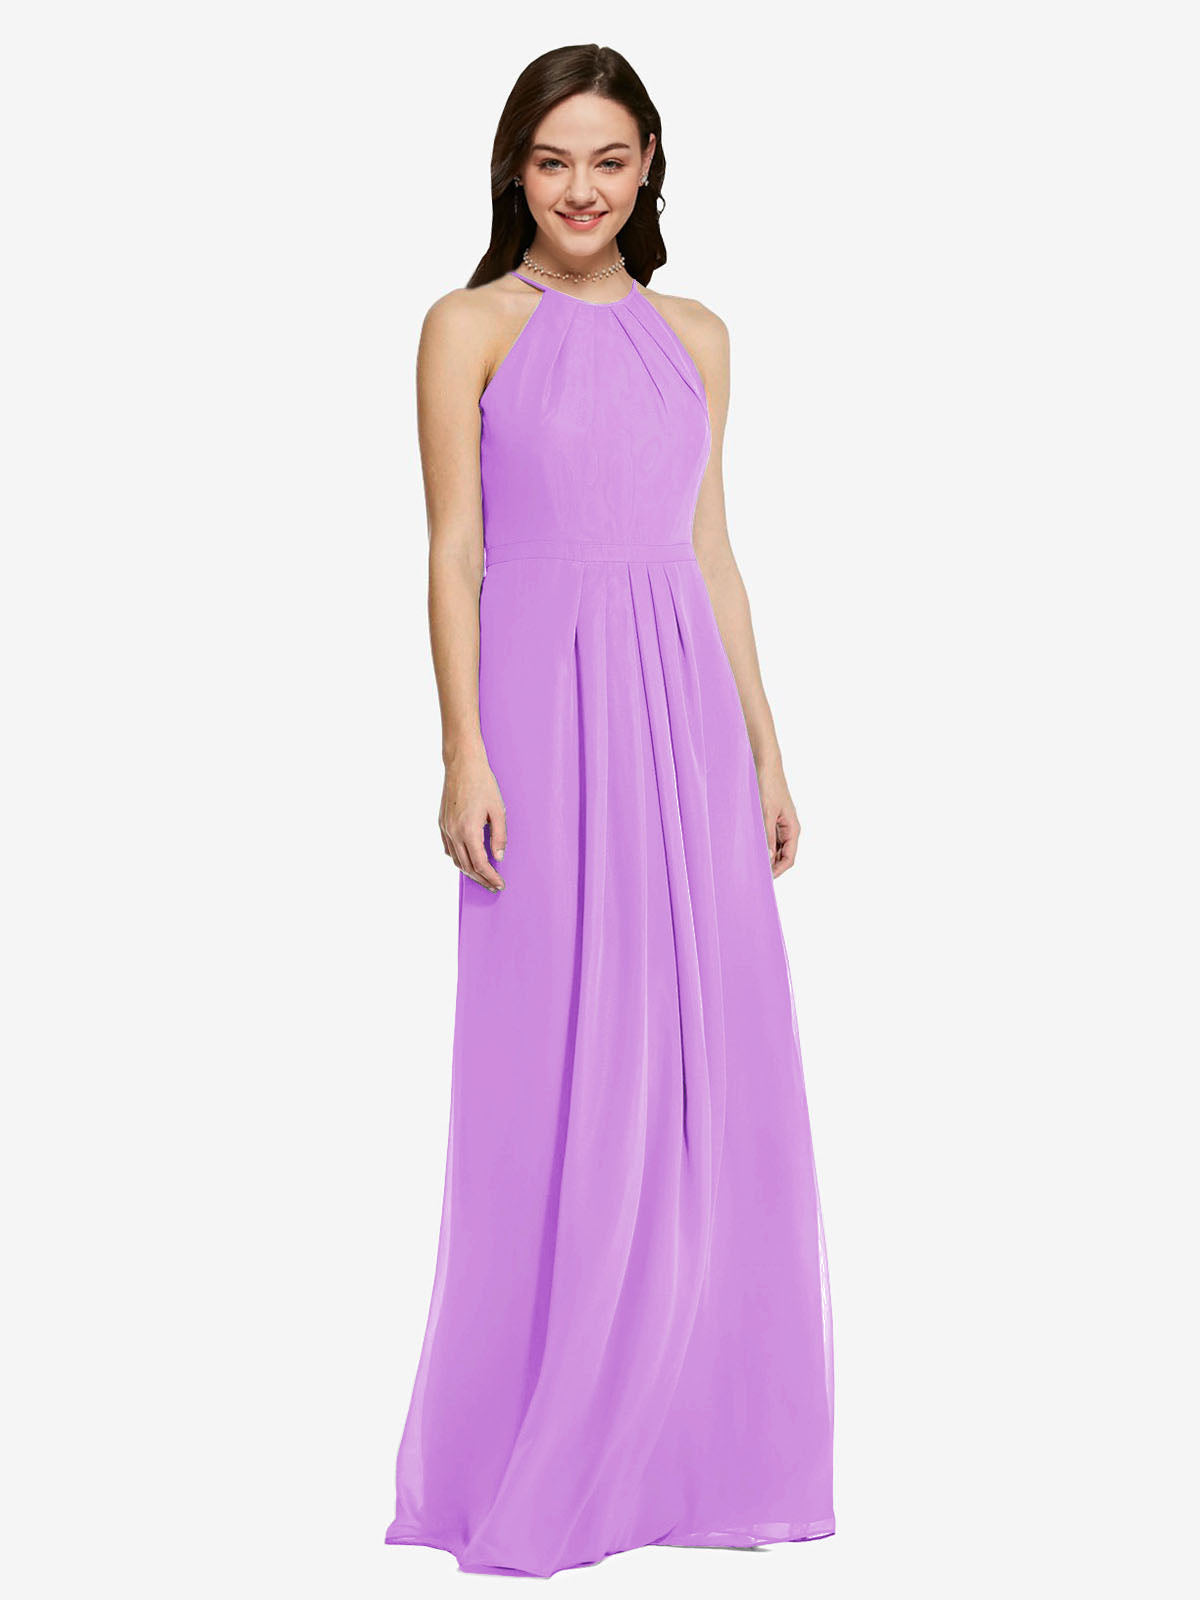 Long Sheath High Neck Halter Sleeveless Violet Chiffon Bridesmaid Dress Koloti